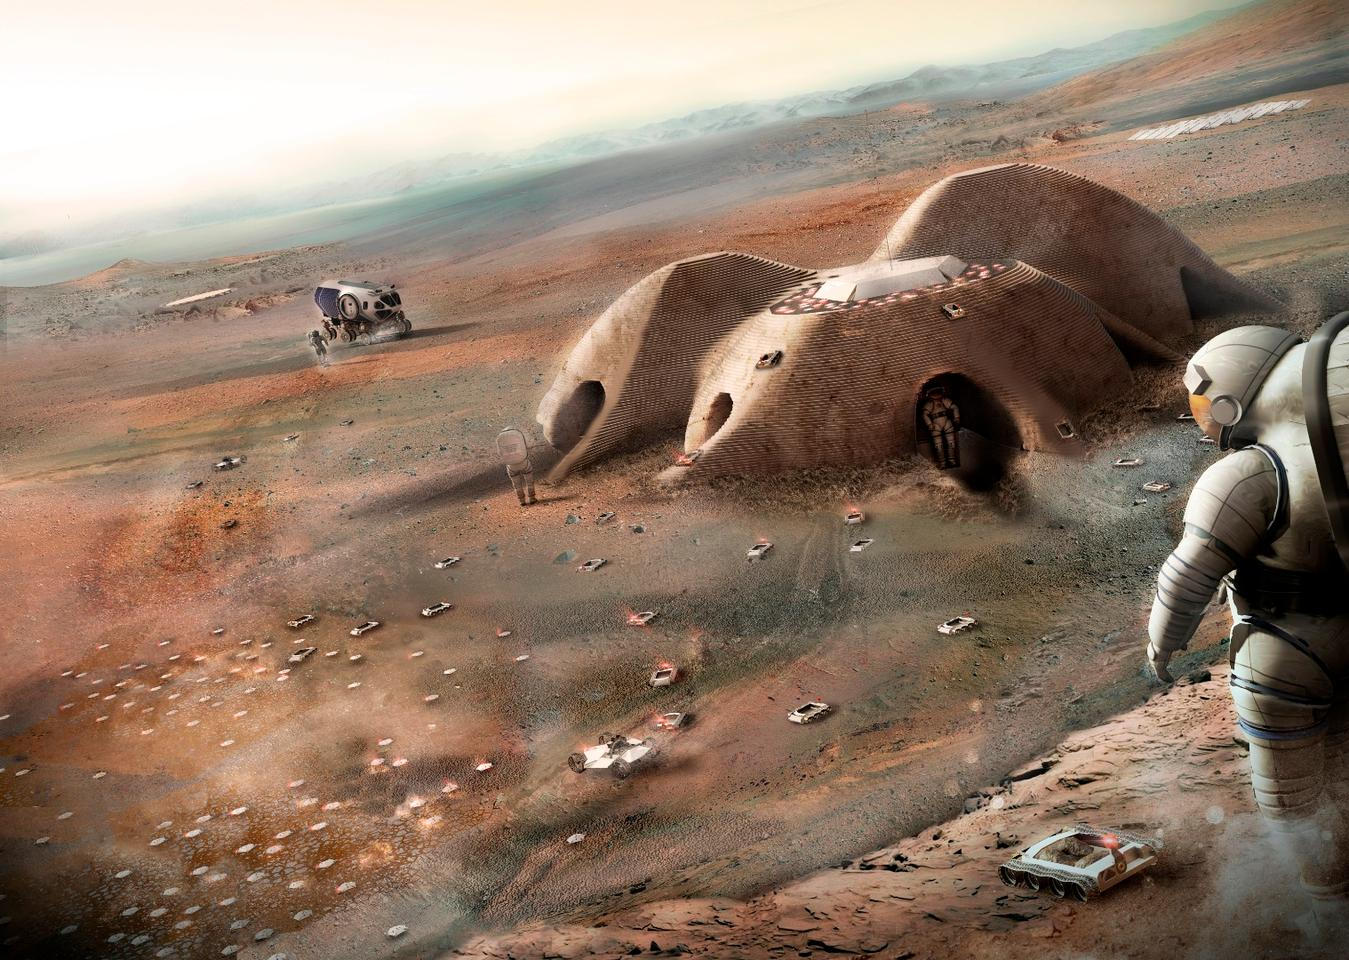 Foster + Parterns' 3D-printed Mars shelter would cover an area of 93 sq m (1,001 sq ft)